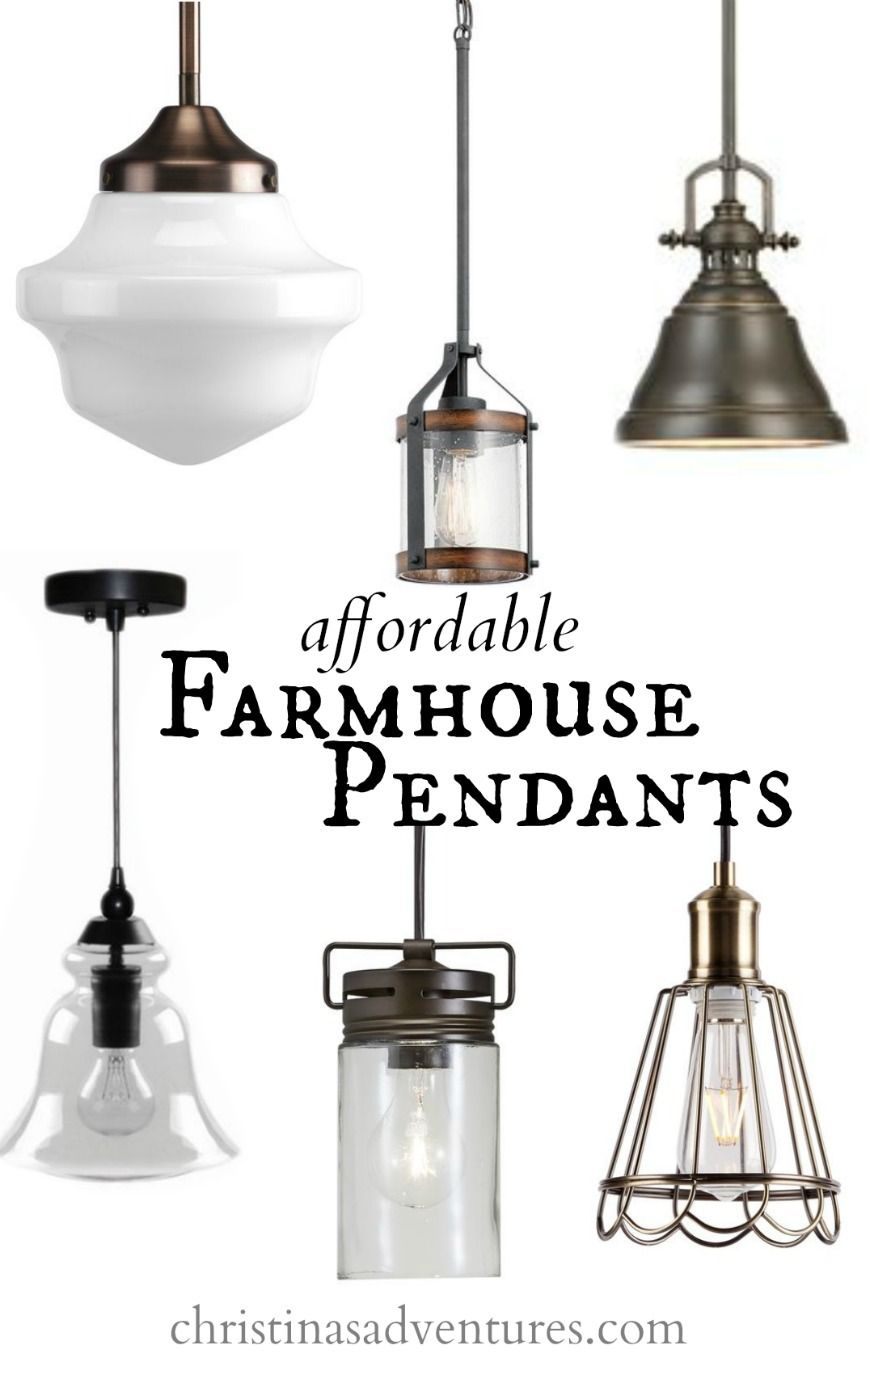 Kitchen Pendant Lighting Lowes Flush Mount Affordable Design Elements | Sinks, Pendants And ...